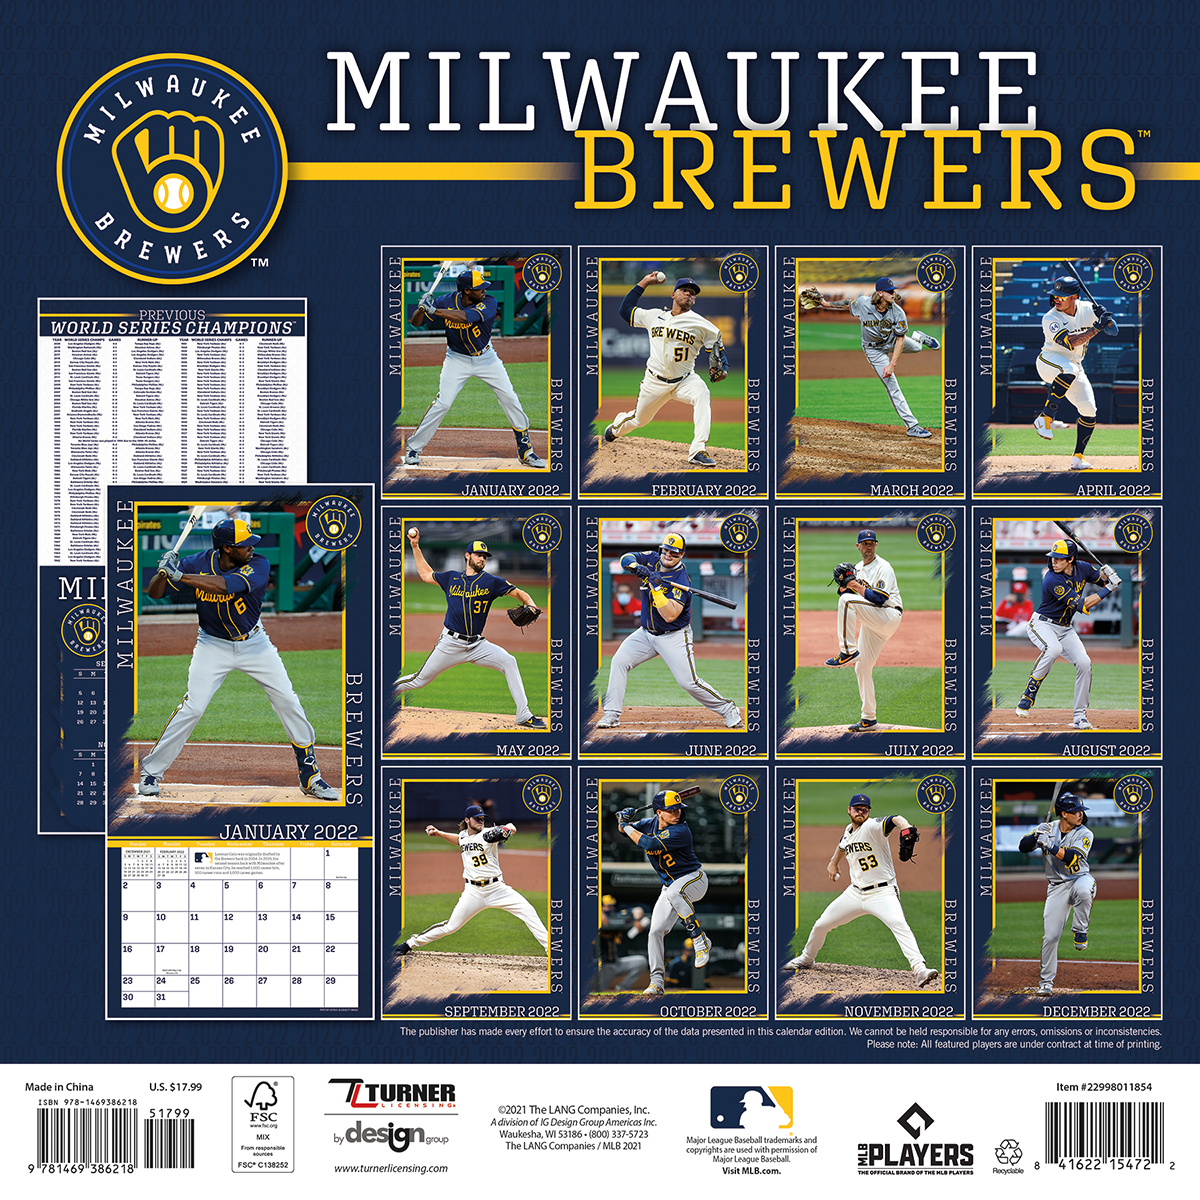 Milwaukee Brewers 2018 Wall Calendar Buy At Khc Sports